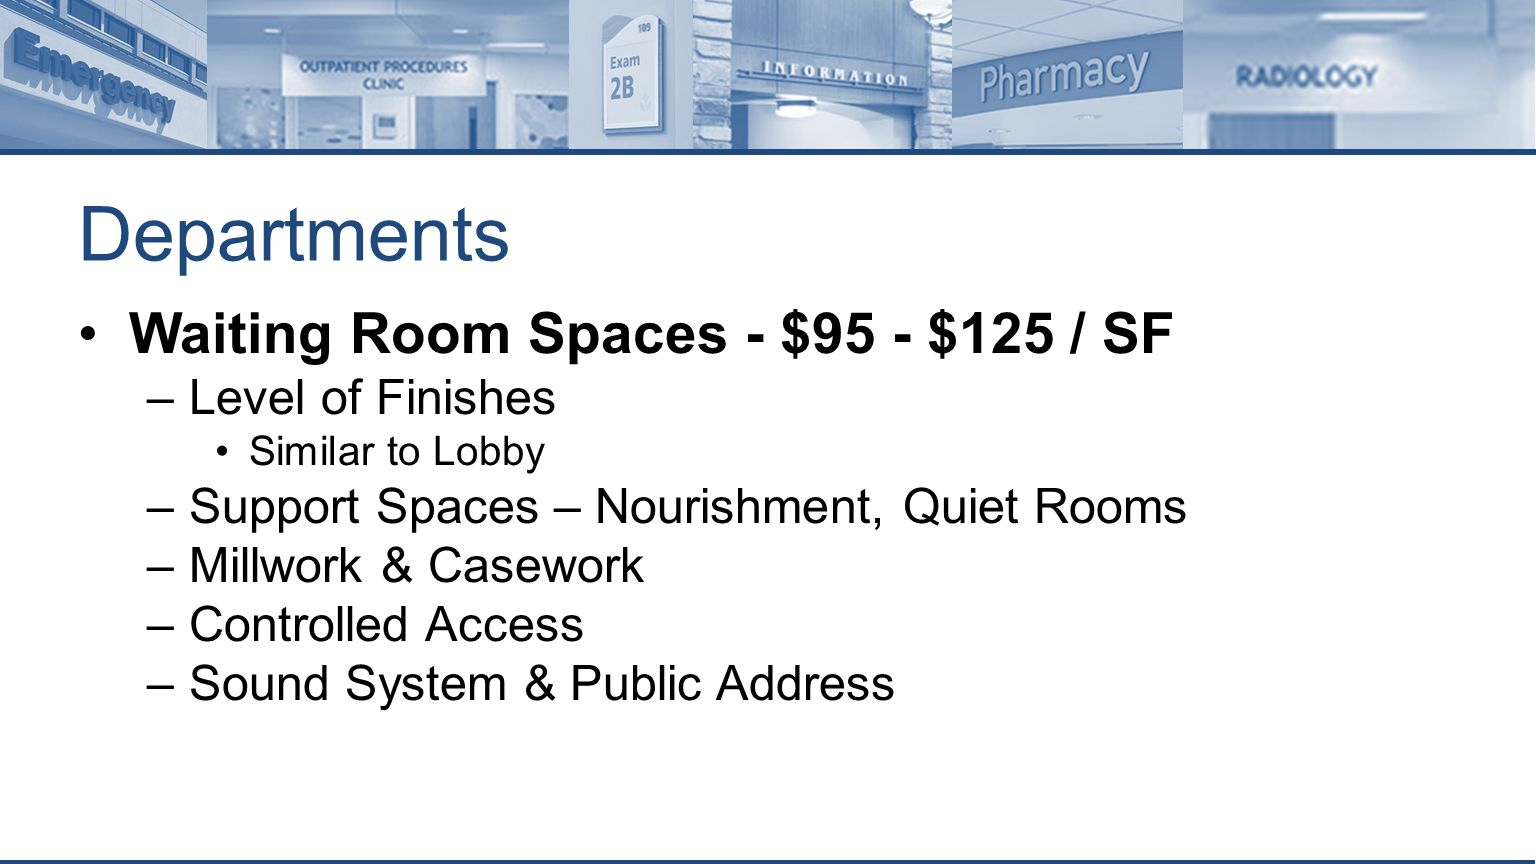 Departments Waiting Room Spaces - $95 - $125 / SF –Level of Finishes Similar to Lobby –Support Spaces – Nourishment, Quiet Rooms –Millwork & Casework –Controlled Access –Sound System & Public Address